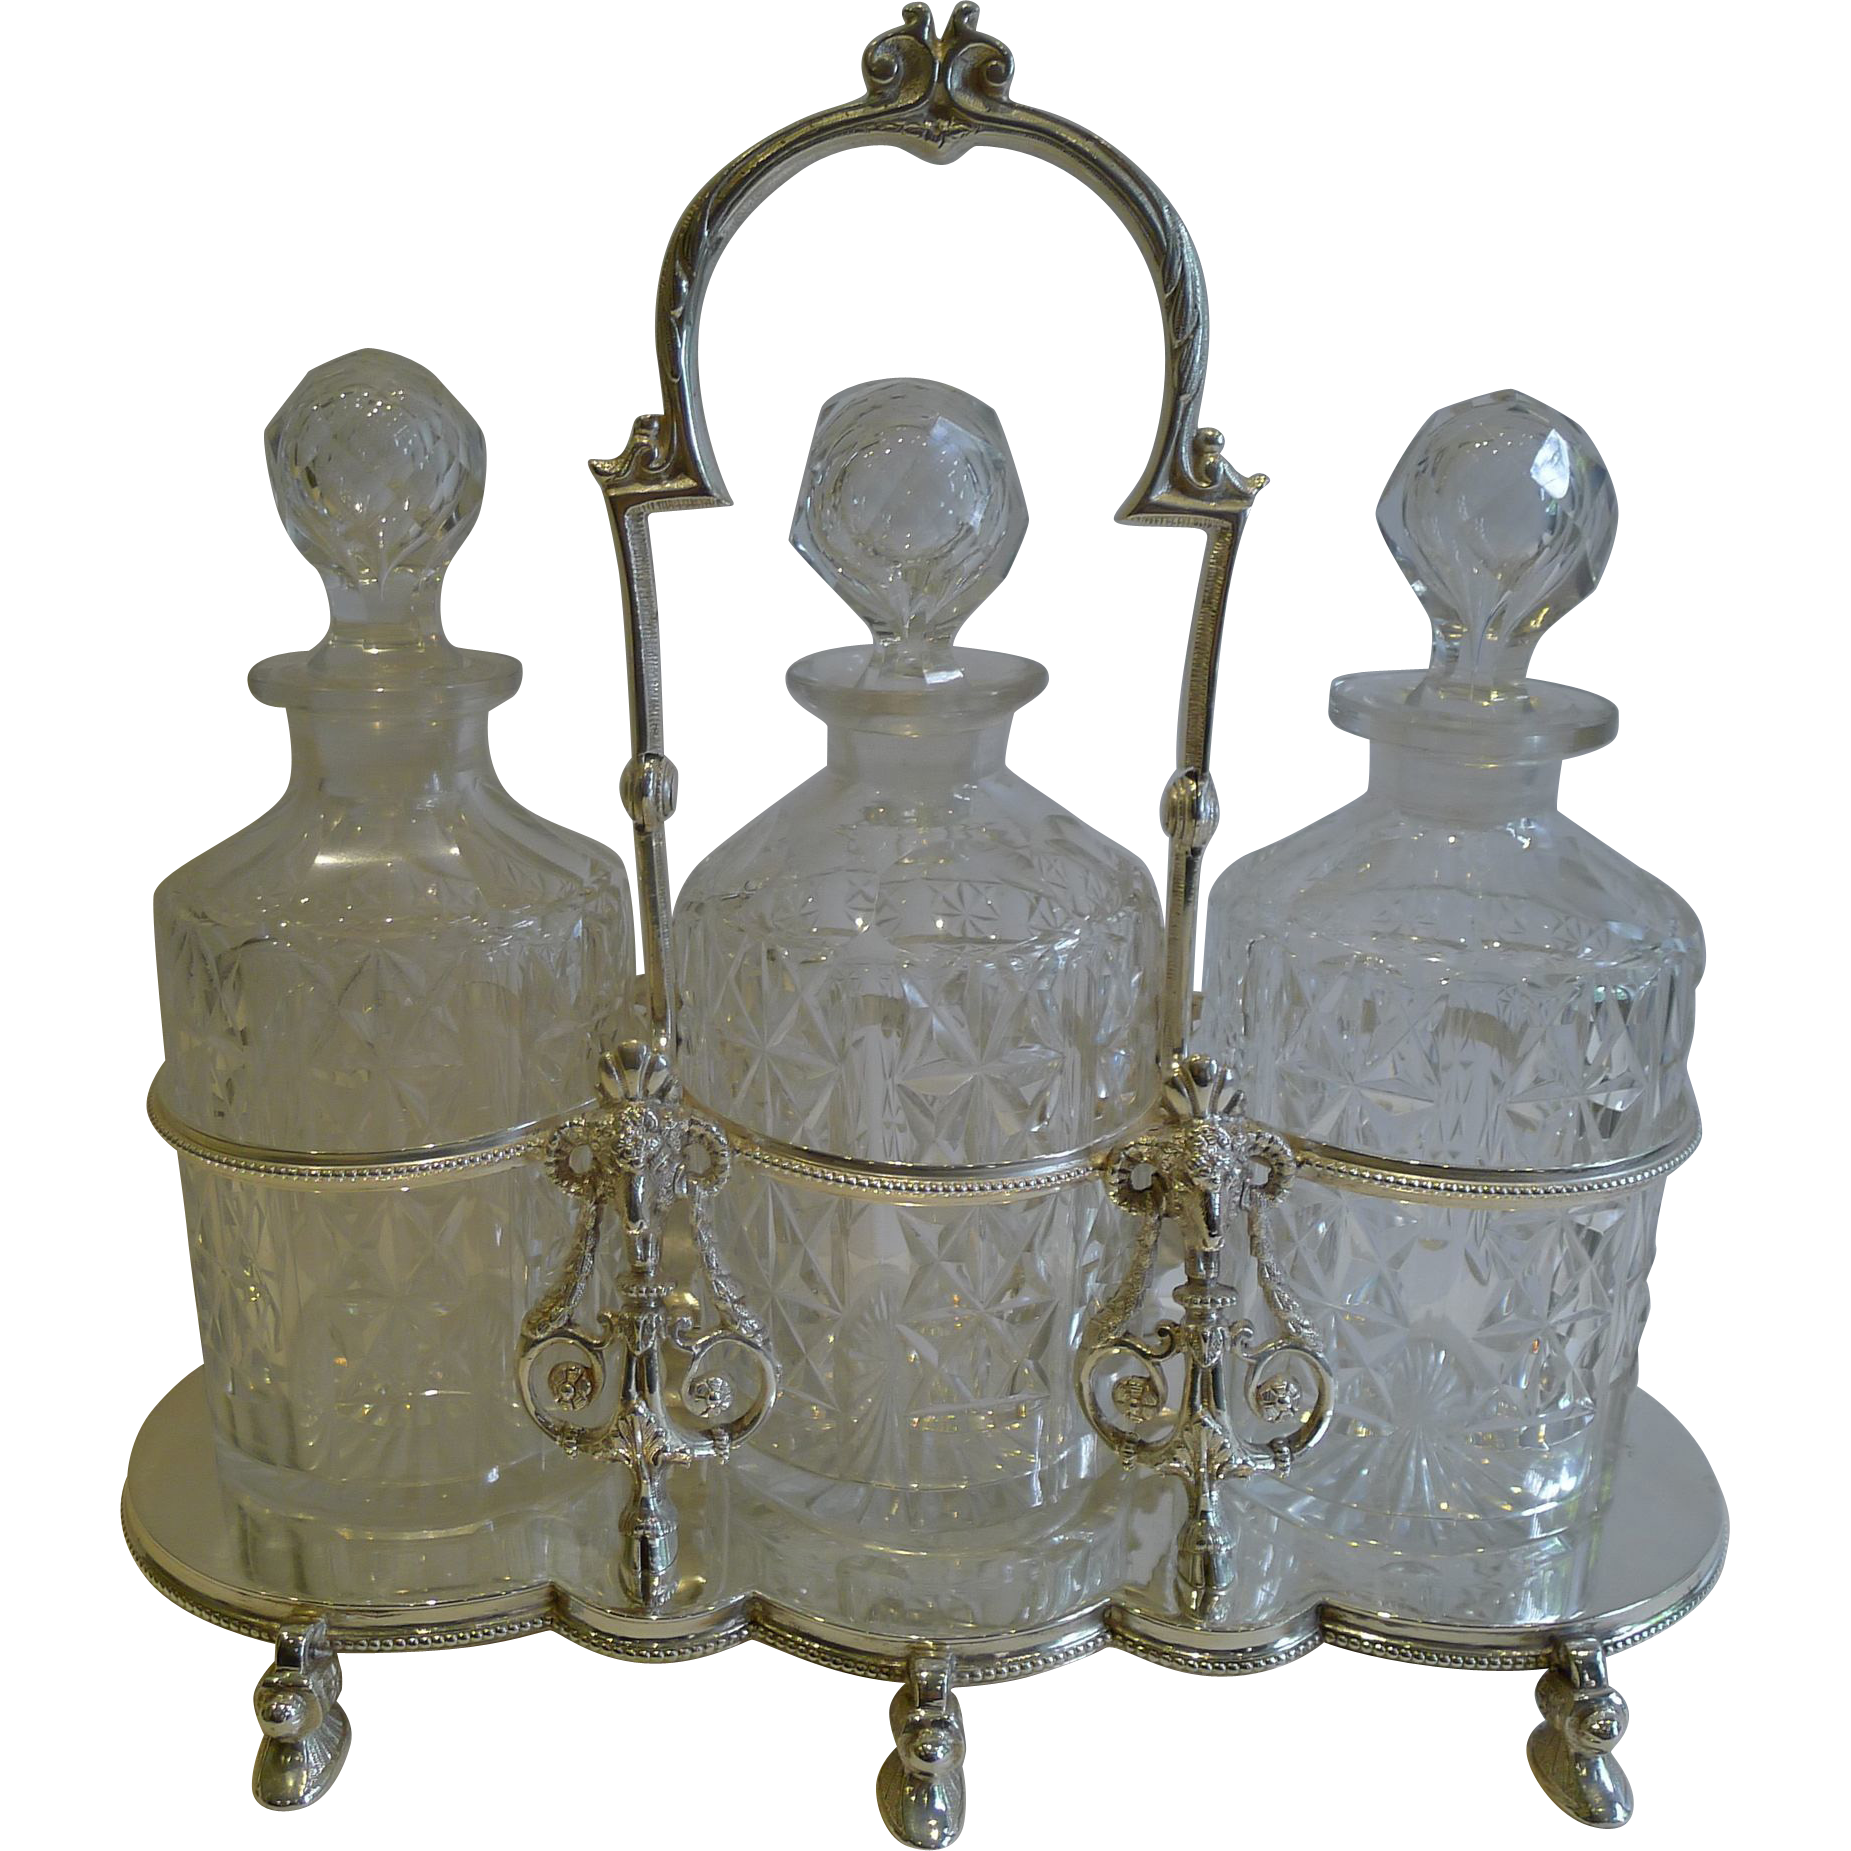 Antique English Figural Tantalus in Silver Plate With Cut Crystal Decanters